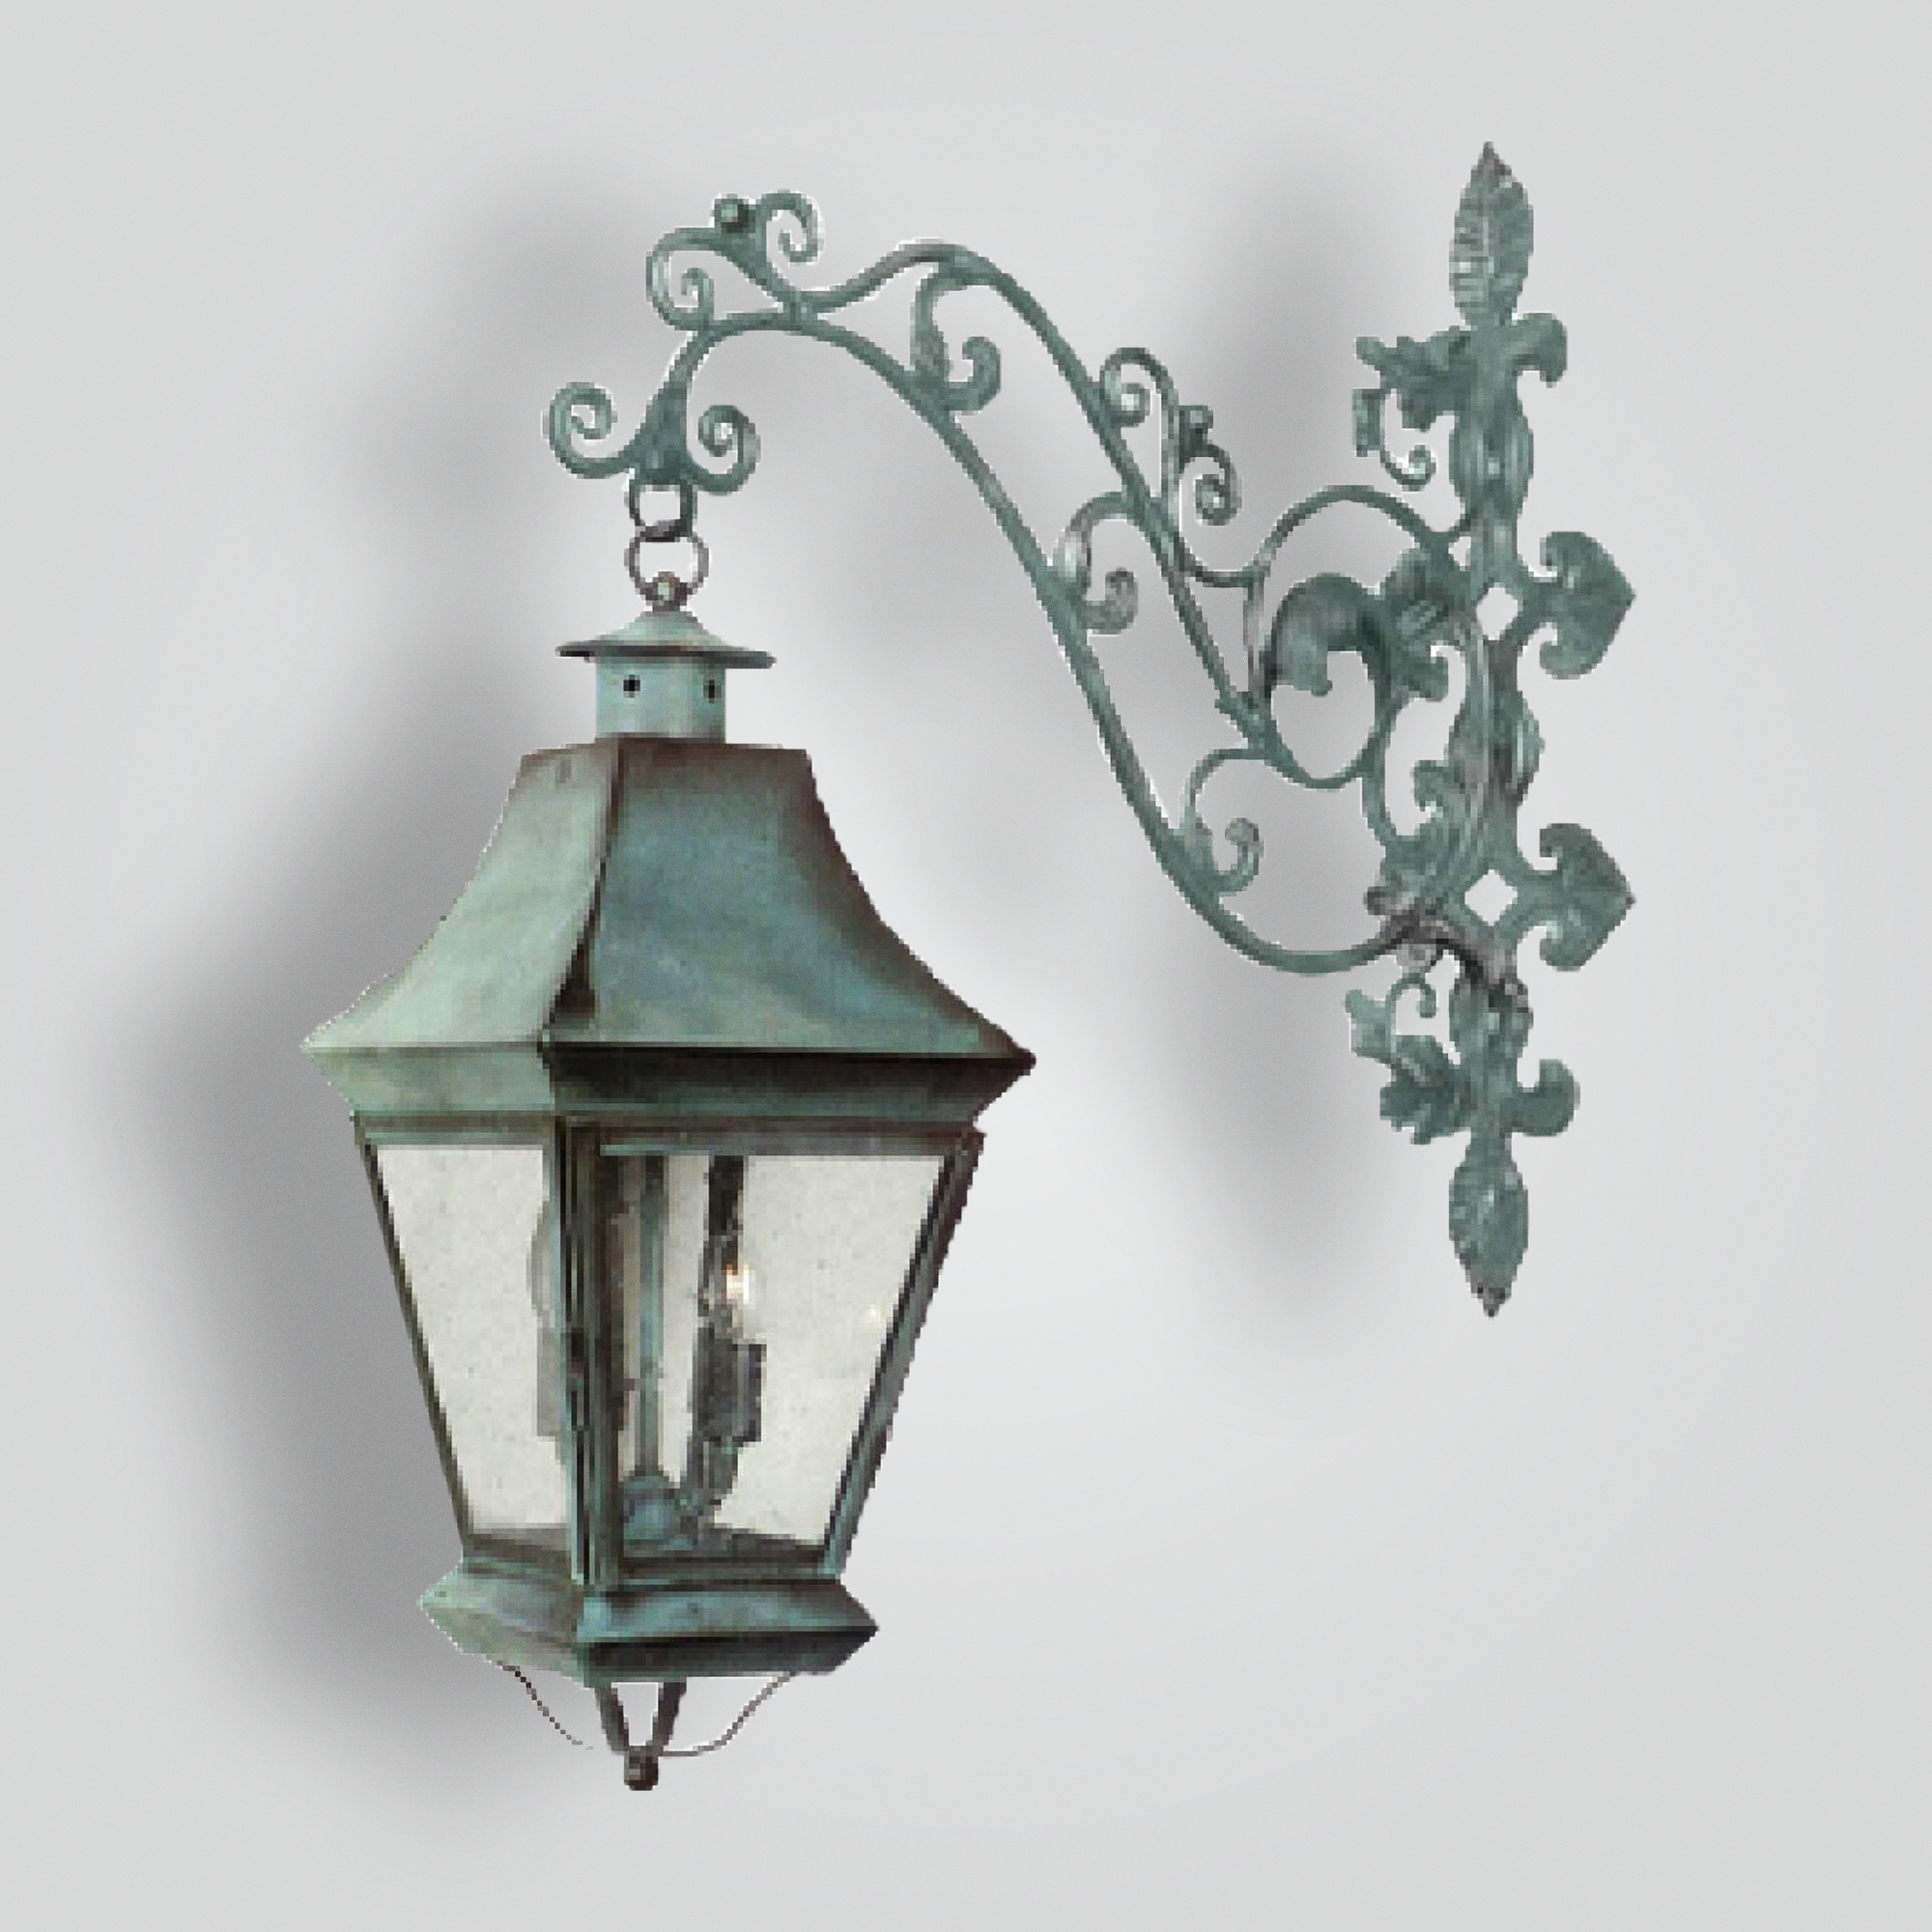 520-cb4-irbr-shba Iron Decorative Arm With Brass Lanterns – ADG Lighting Collection